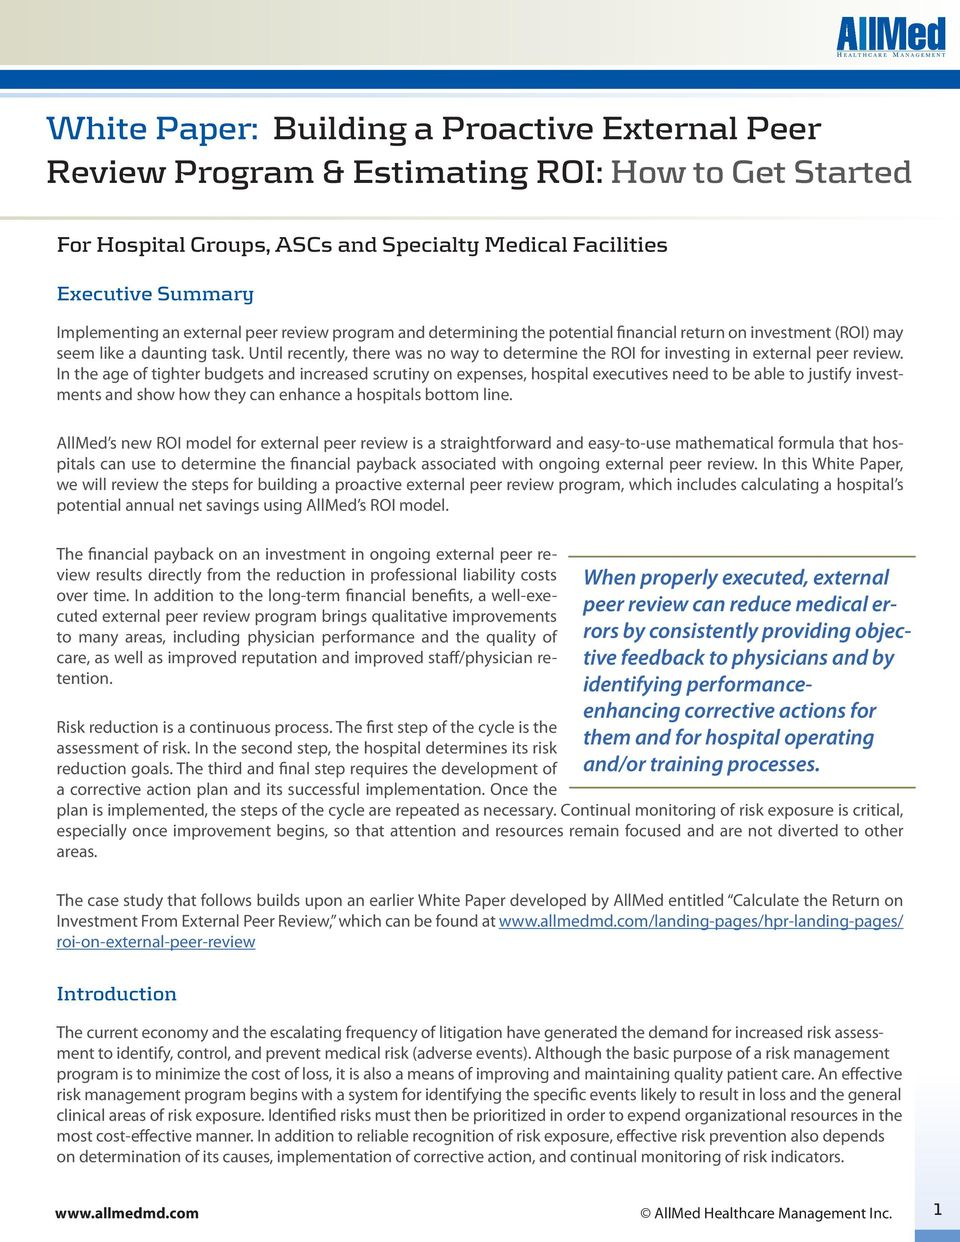 Until recently, there was no way to determine the ROI for investing in external peer review.